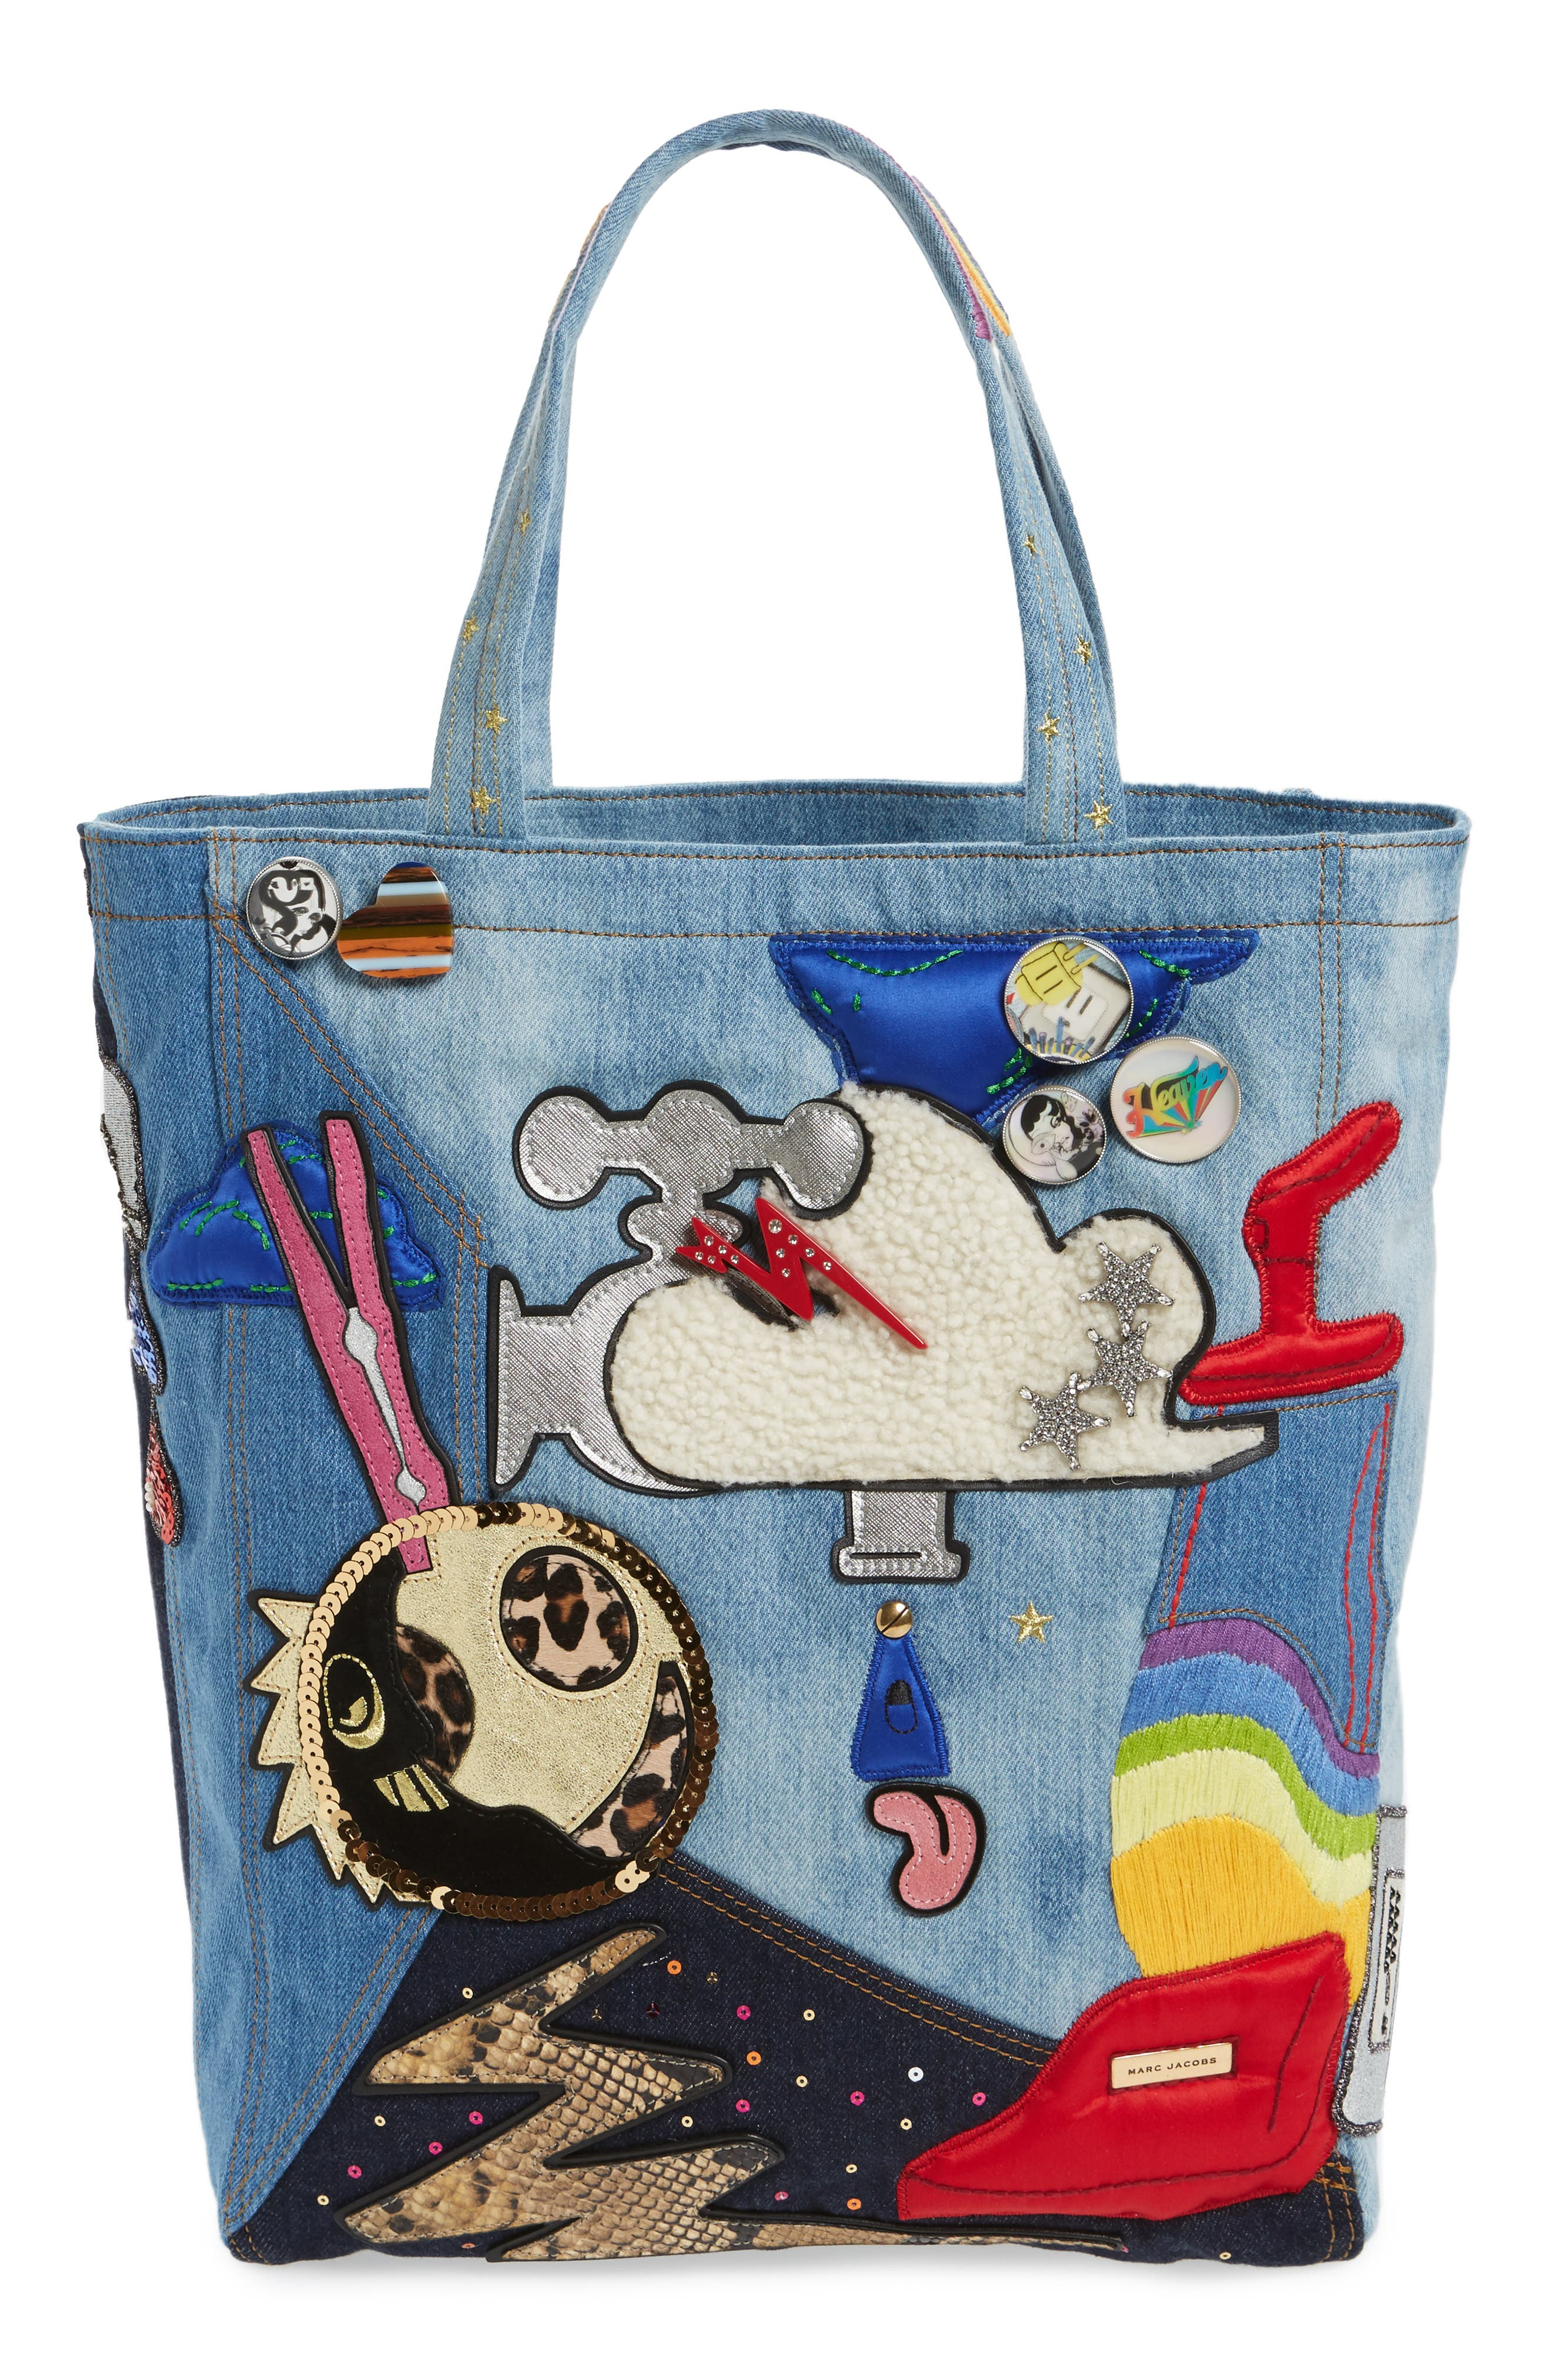 Alternate Image 1 Selected - MARC JACOBS Denim Tote